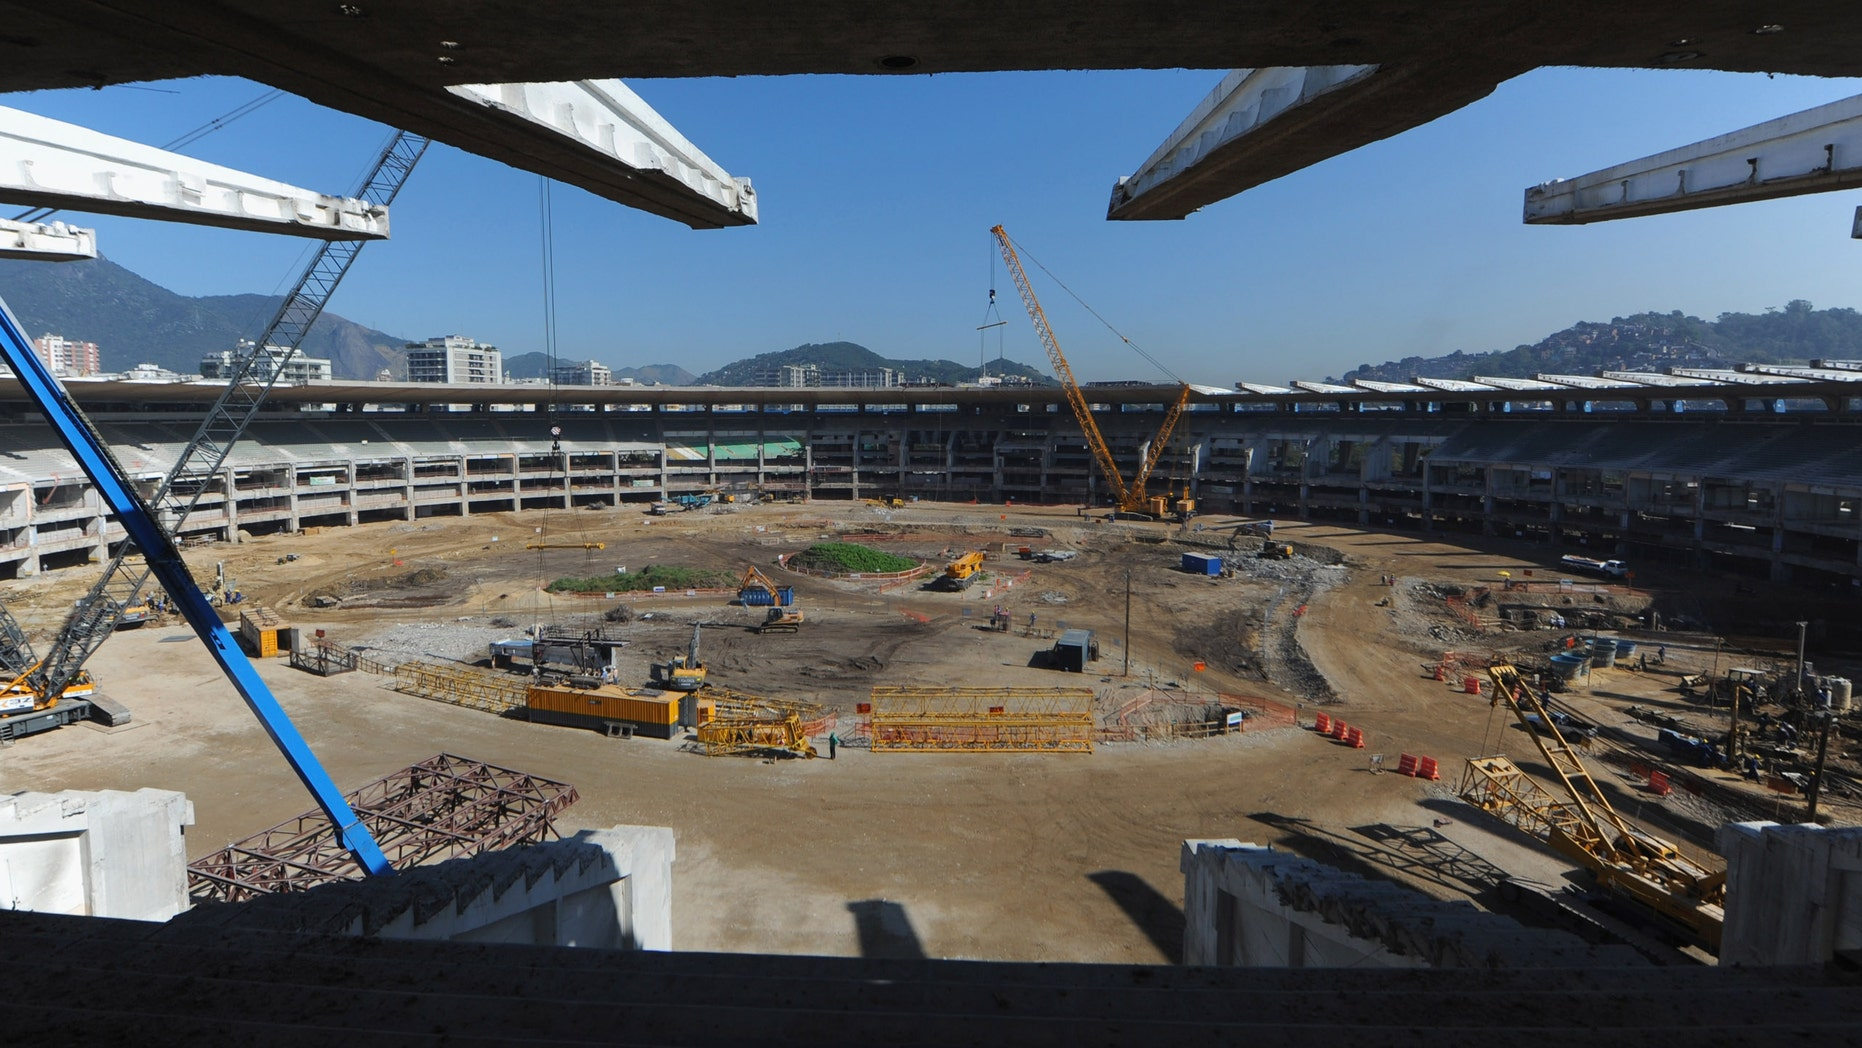 RIO DE JANEIRO, BRAZIL - JULY 27:  Building work continues at the Maracana Stadium ahead of the Preliminary Draw of the 2014 FIFA World Cup on July 27, 2011 in Rio de Janeiro, Brazil.  (Photo by Michael Regan/Getty Images)